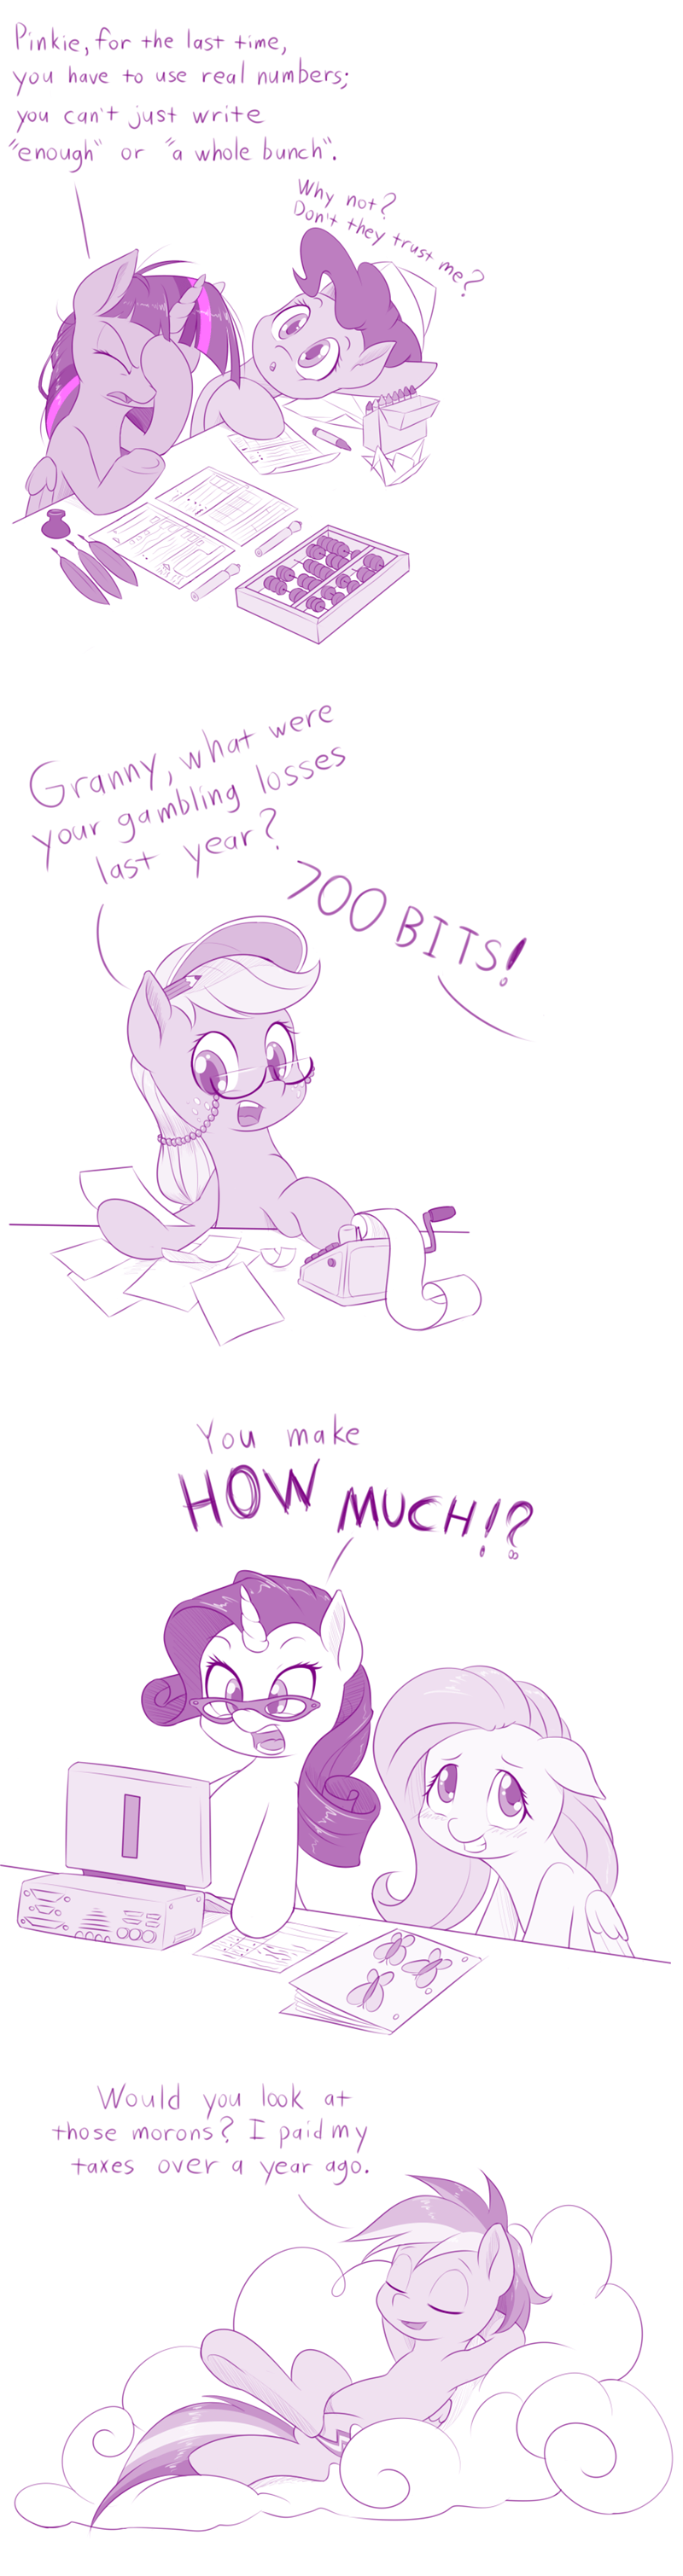 dstears horse taxes applejack dwight likes sparkles twilight sparkle pinkie pie rarity cartoon horse program granny smith fluttershy rainbow dash - 9025372928